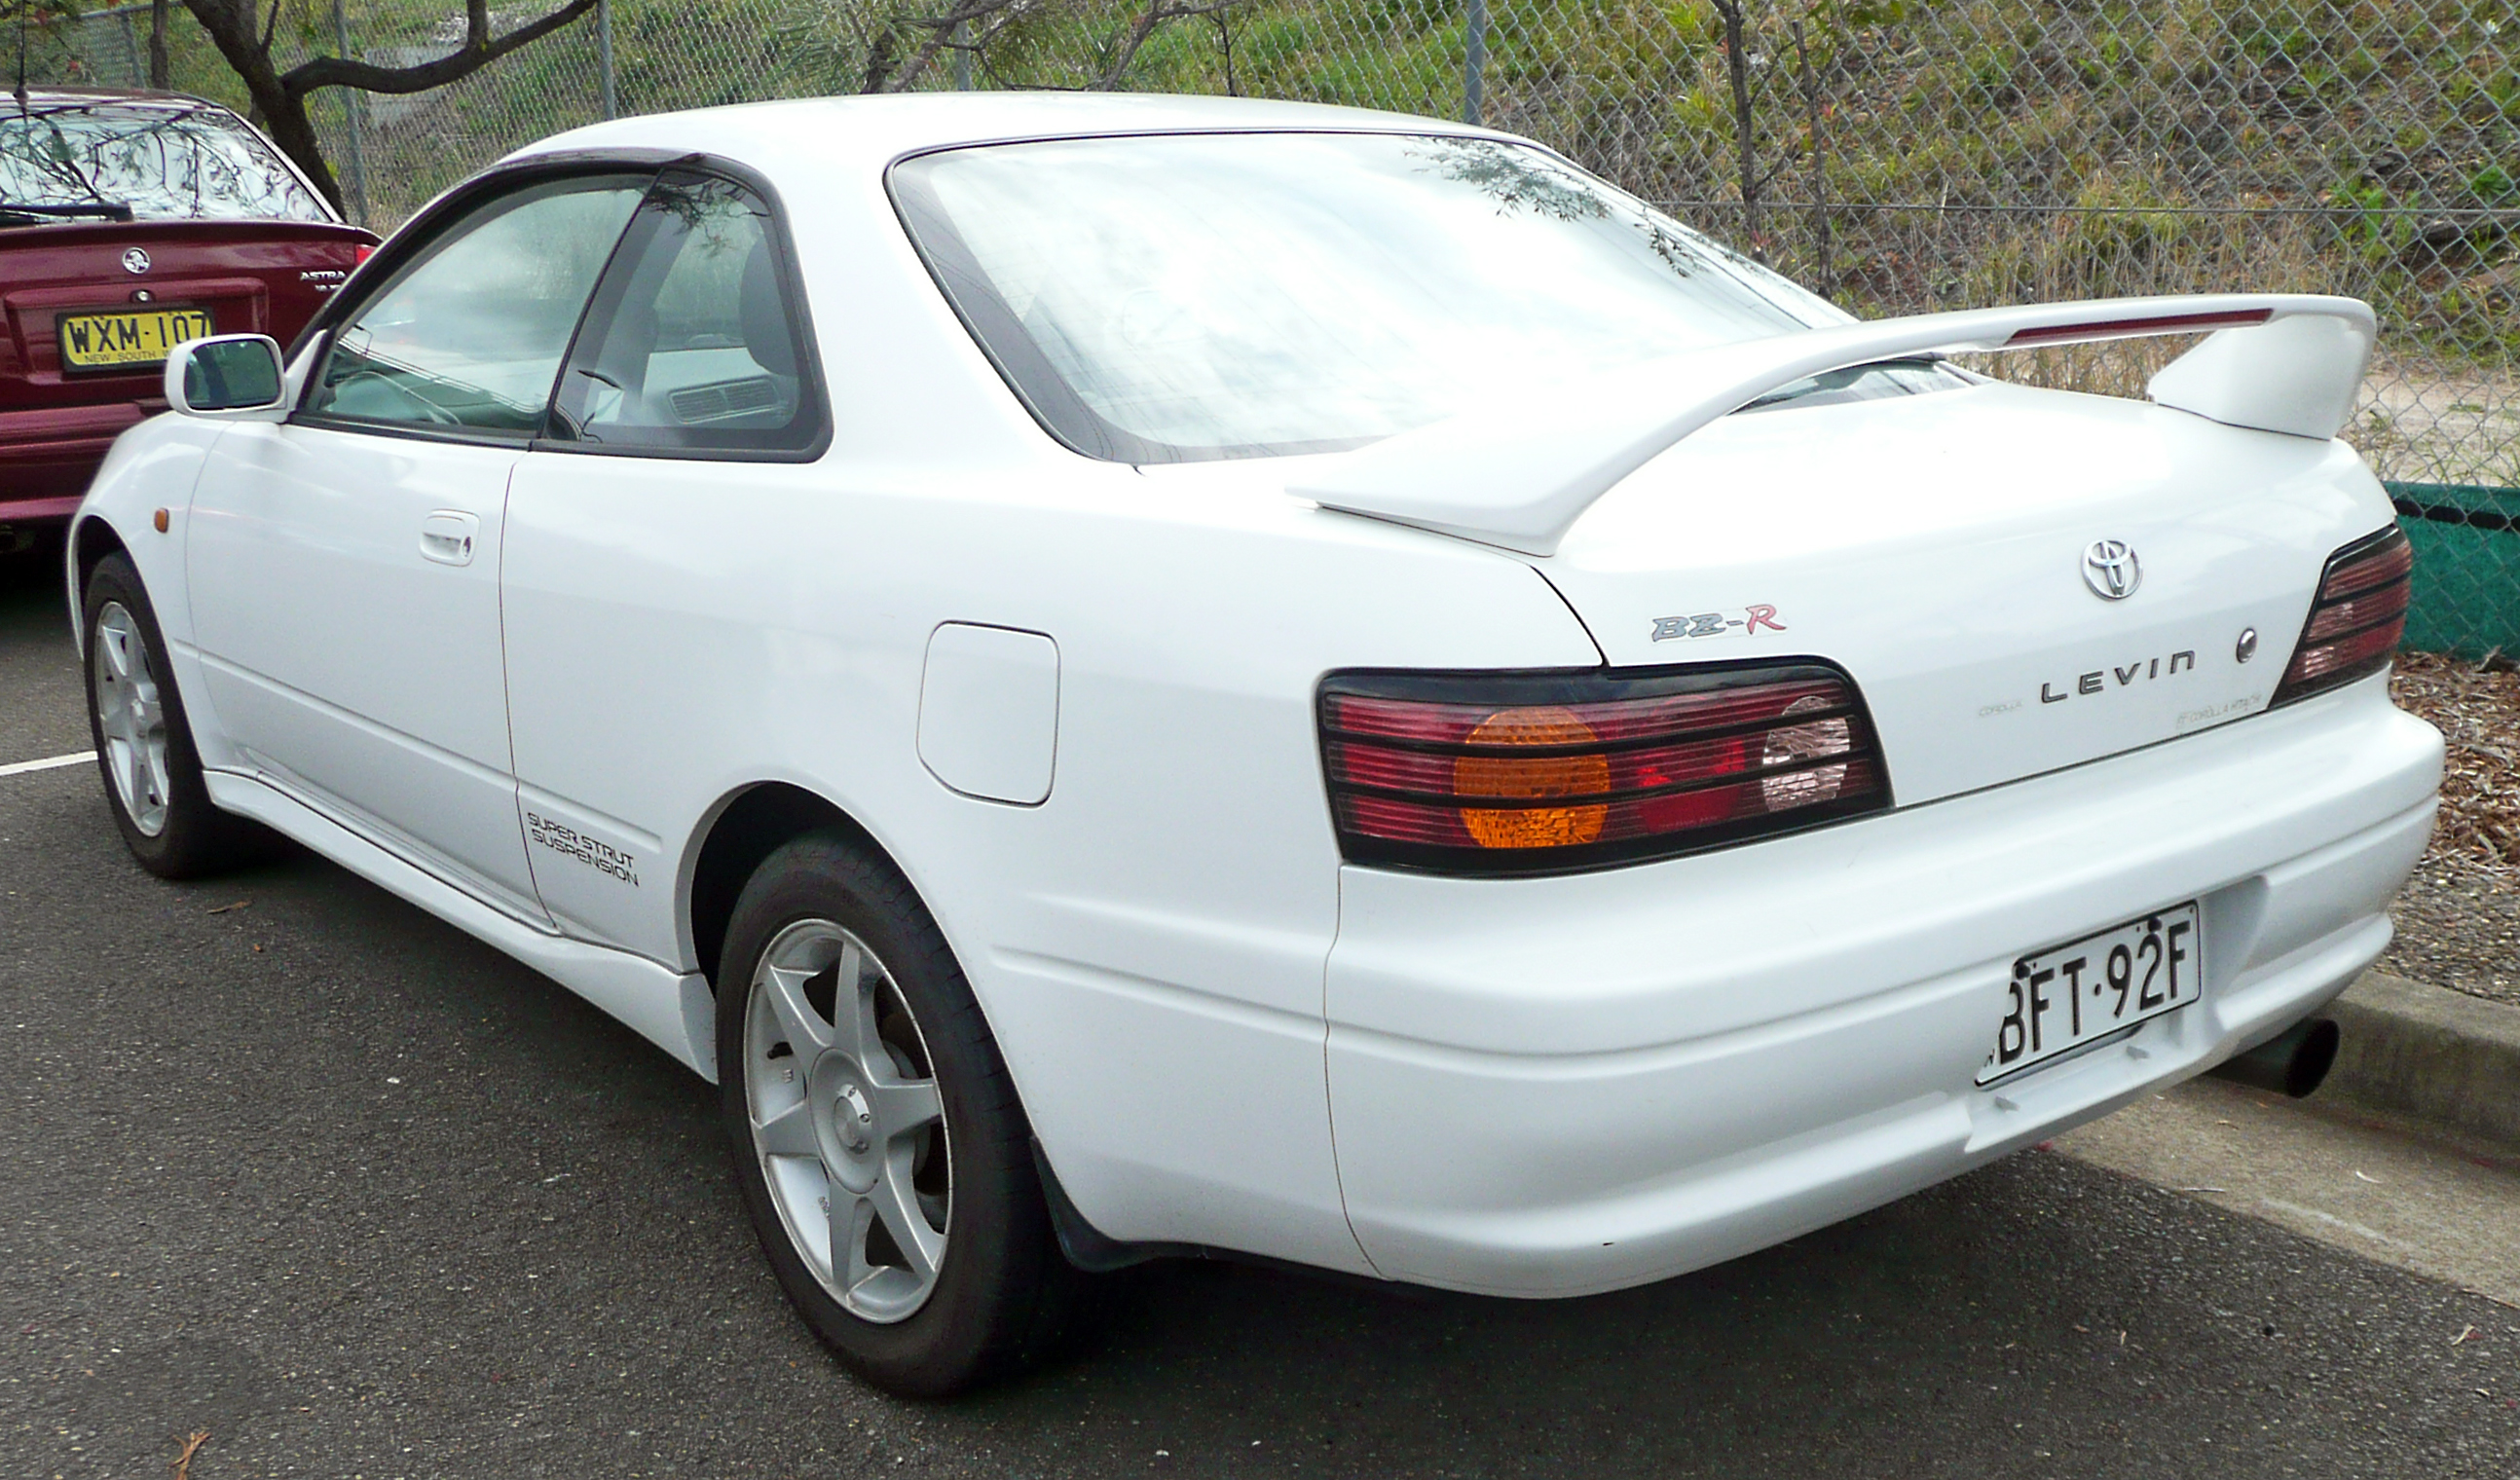 File:1997 2000 Toyota Corolla Levin (AE111) BZ R Coupe 02